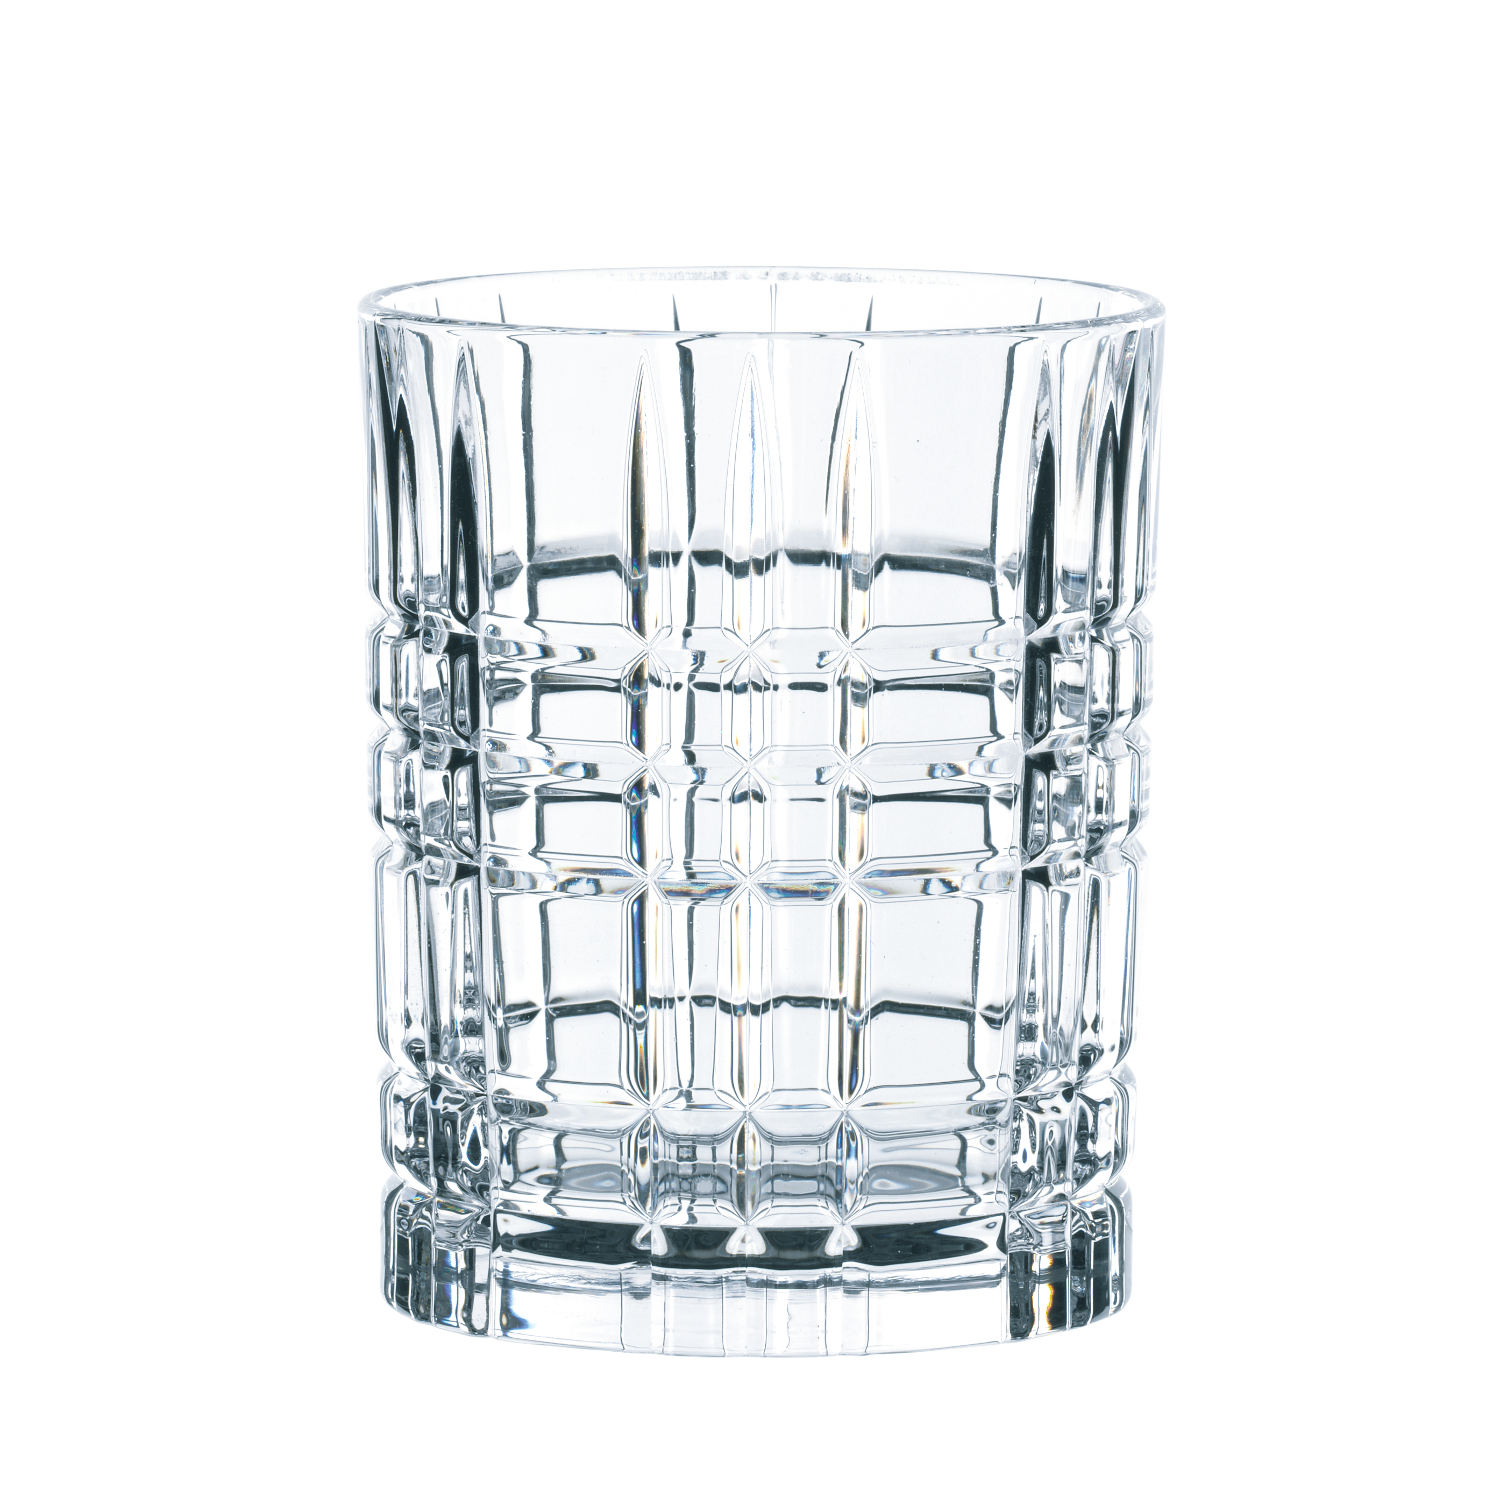 Nachtmann Square Crystal 12.1 Ounce Whiskey Tumbler, Set of 4